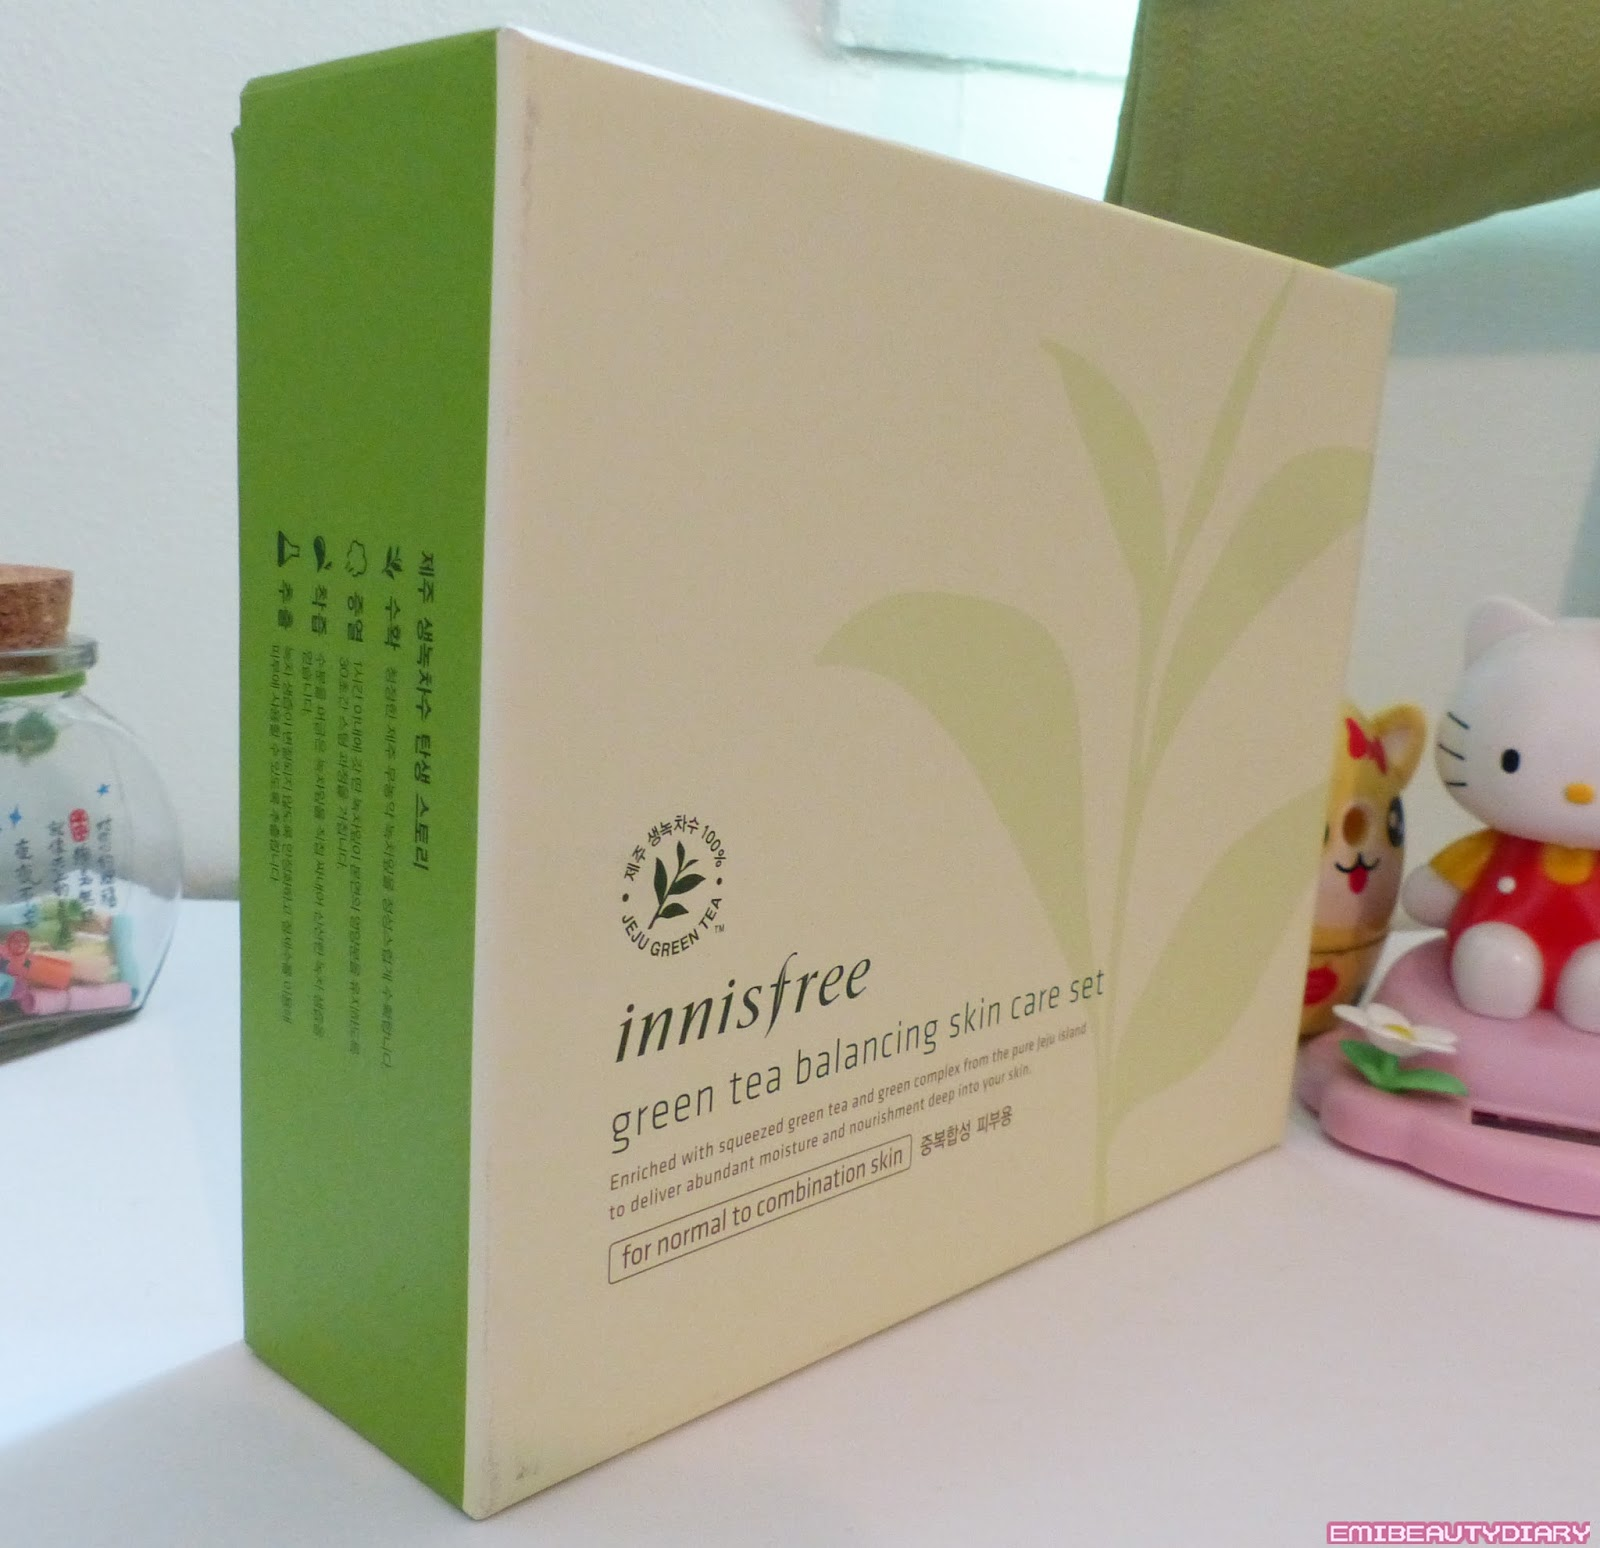 Emi Beauty Diary: Unboxing Innisfree Green Tea Balancing Line Set!